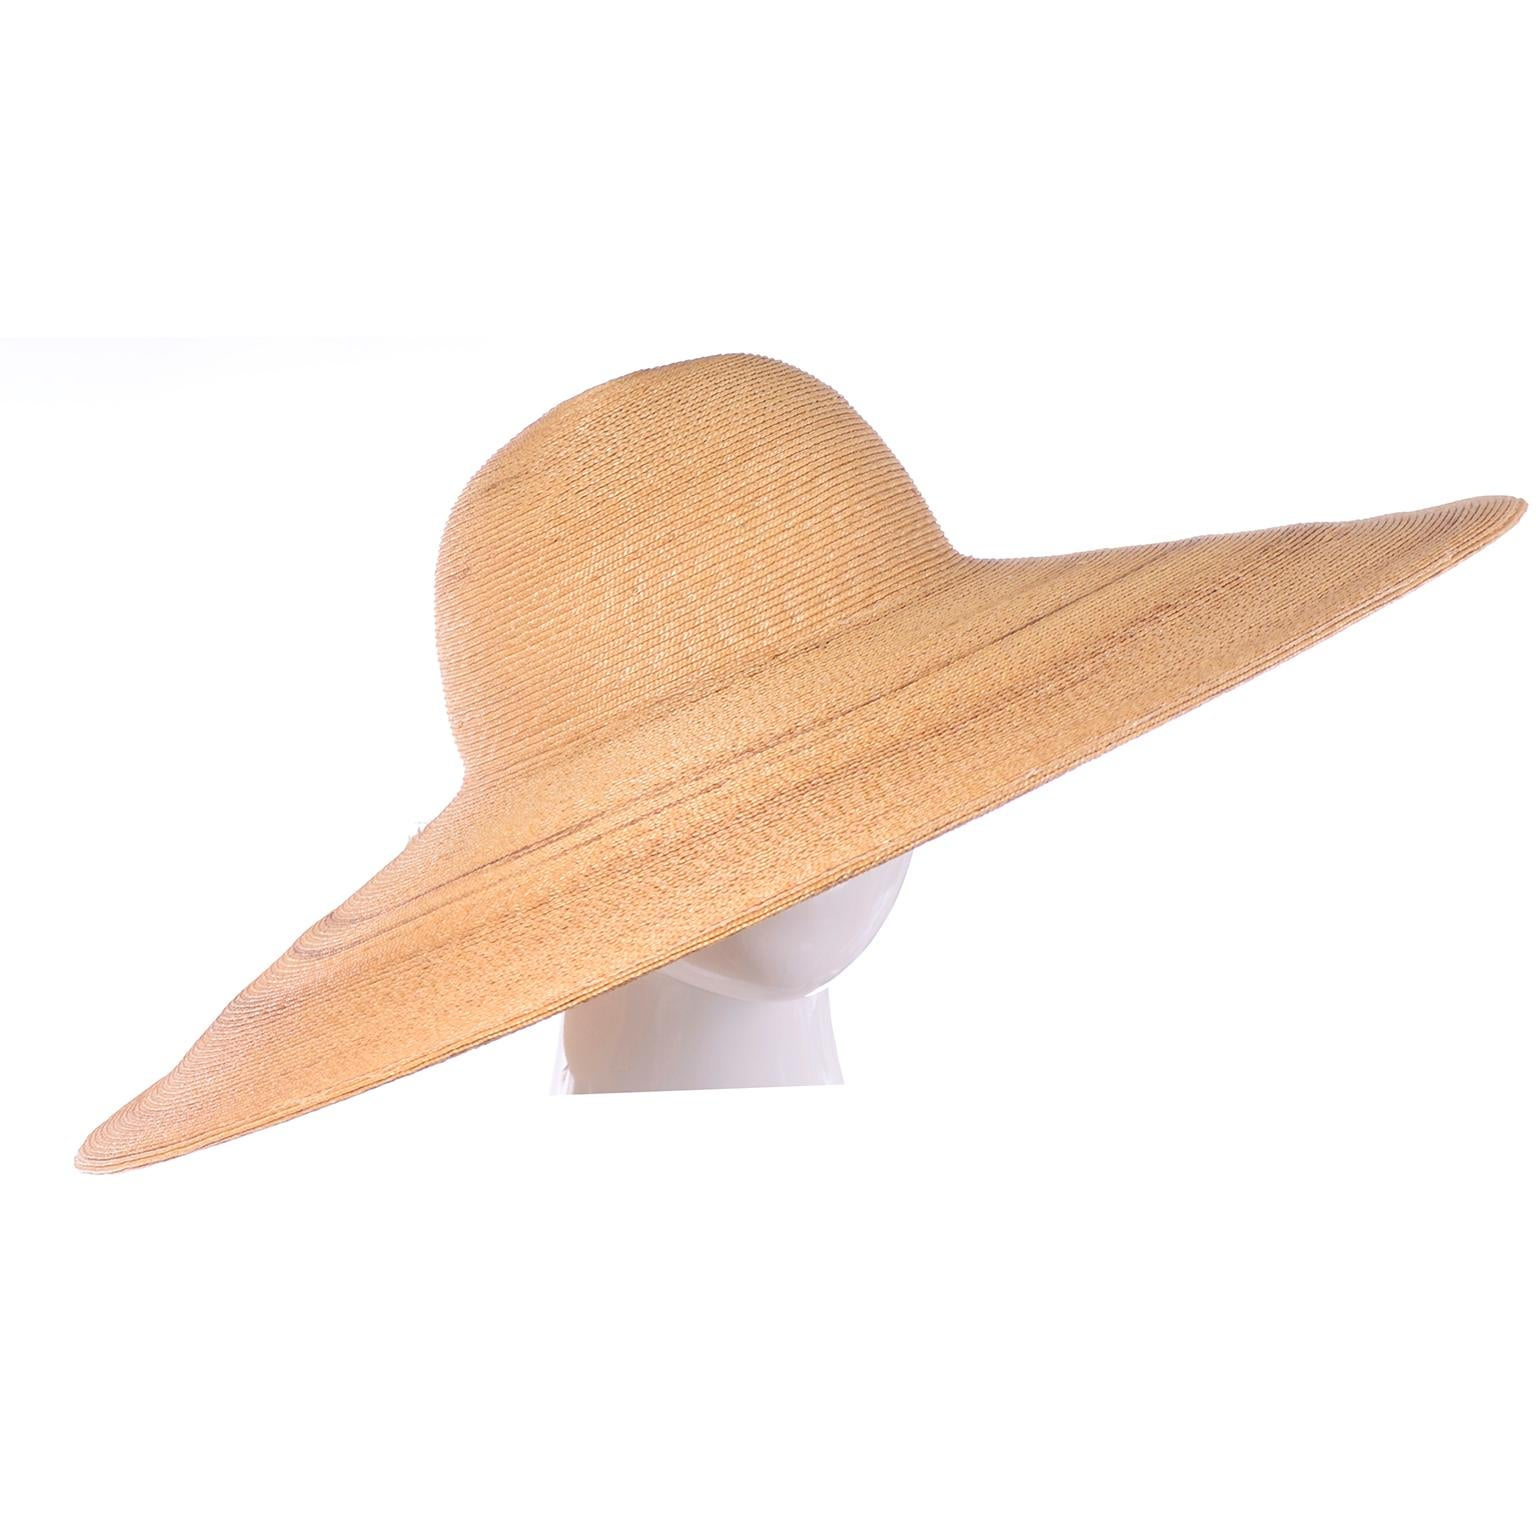 7cf26e03 Patricia Underwood Vintage Wide Brim Natural Woven Straw Hat For Sale at  1stdibs